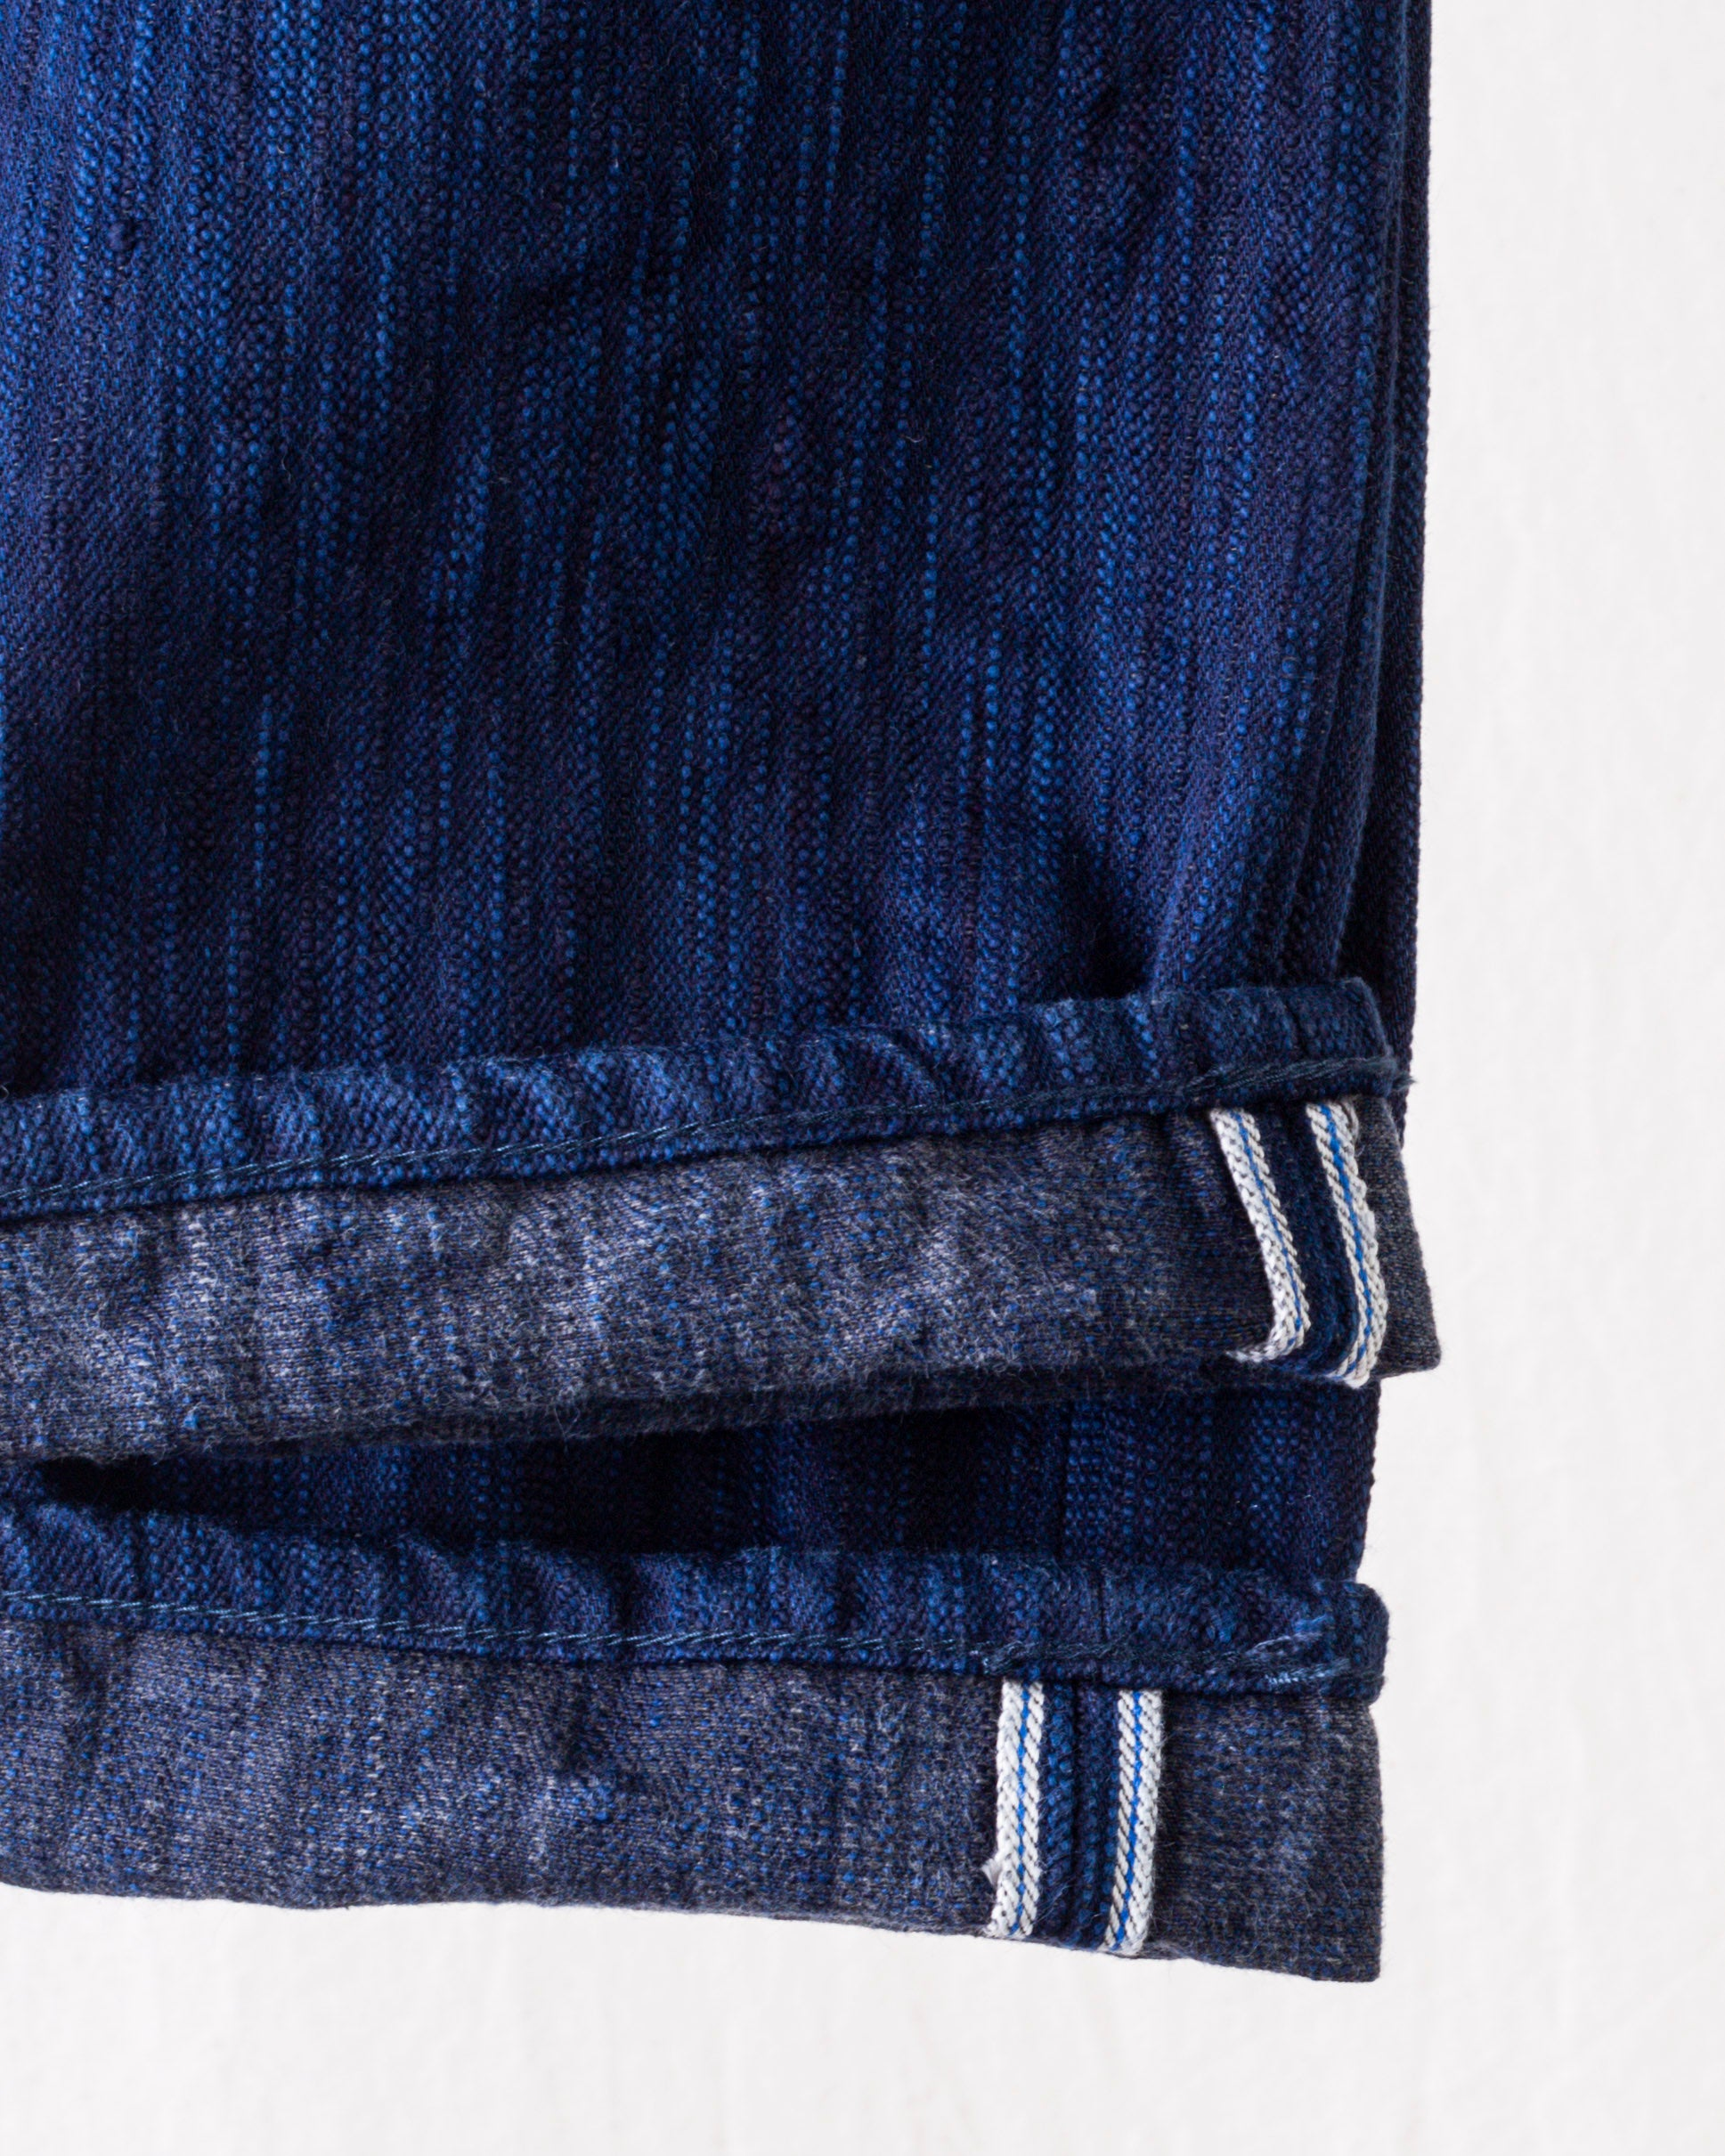 AIBK-019 Natural Indigo x Sumi Relaxed Tapered Blue In Green Exclusive Version